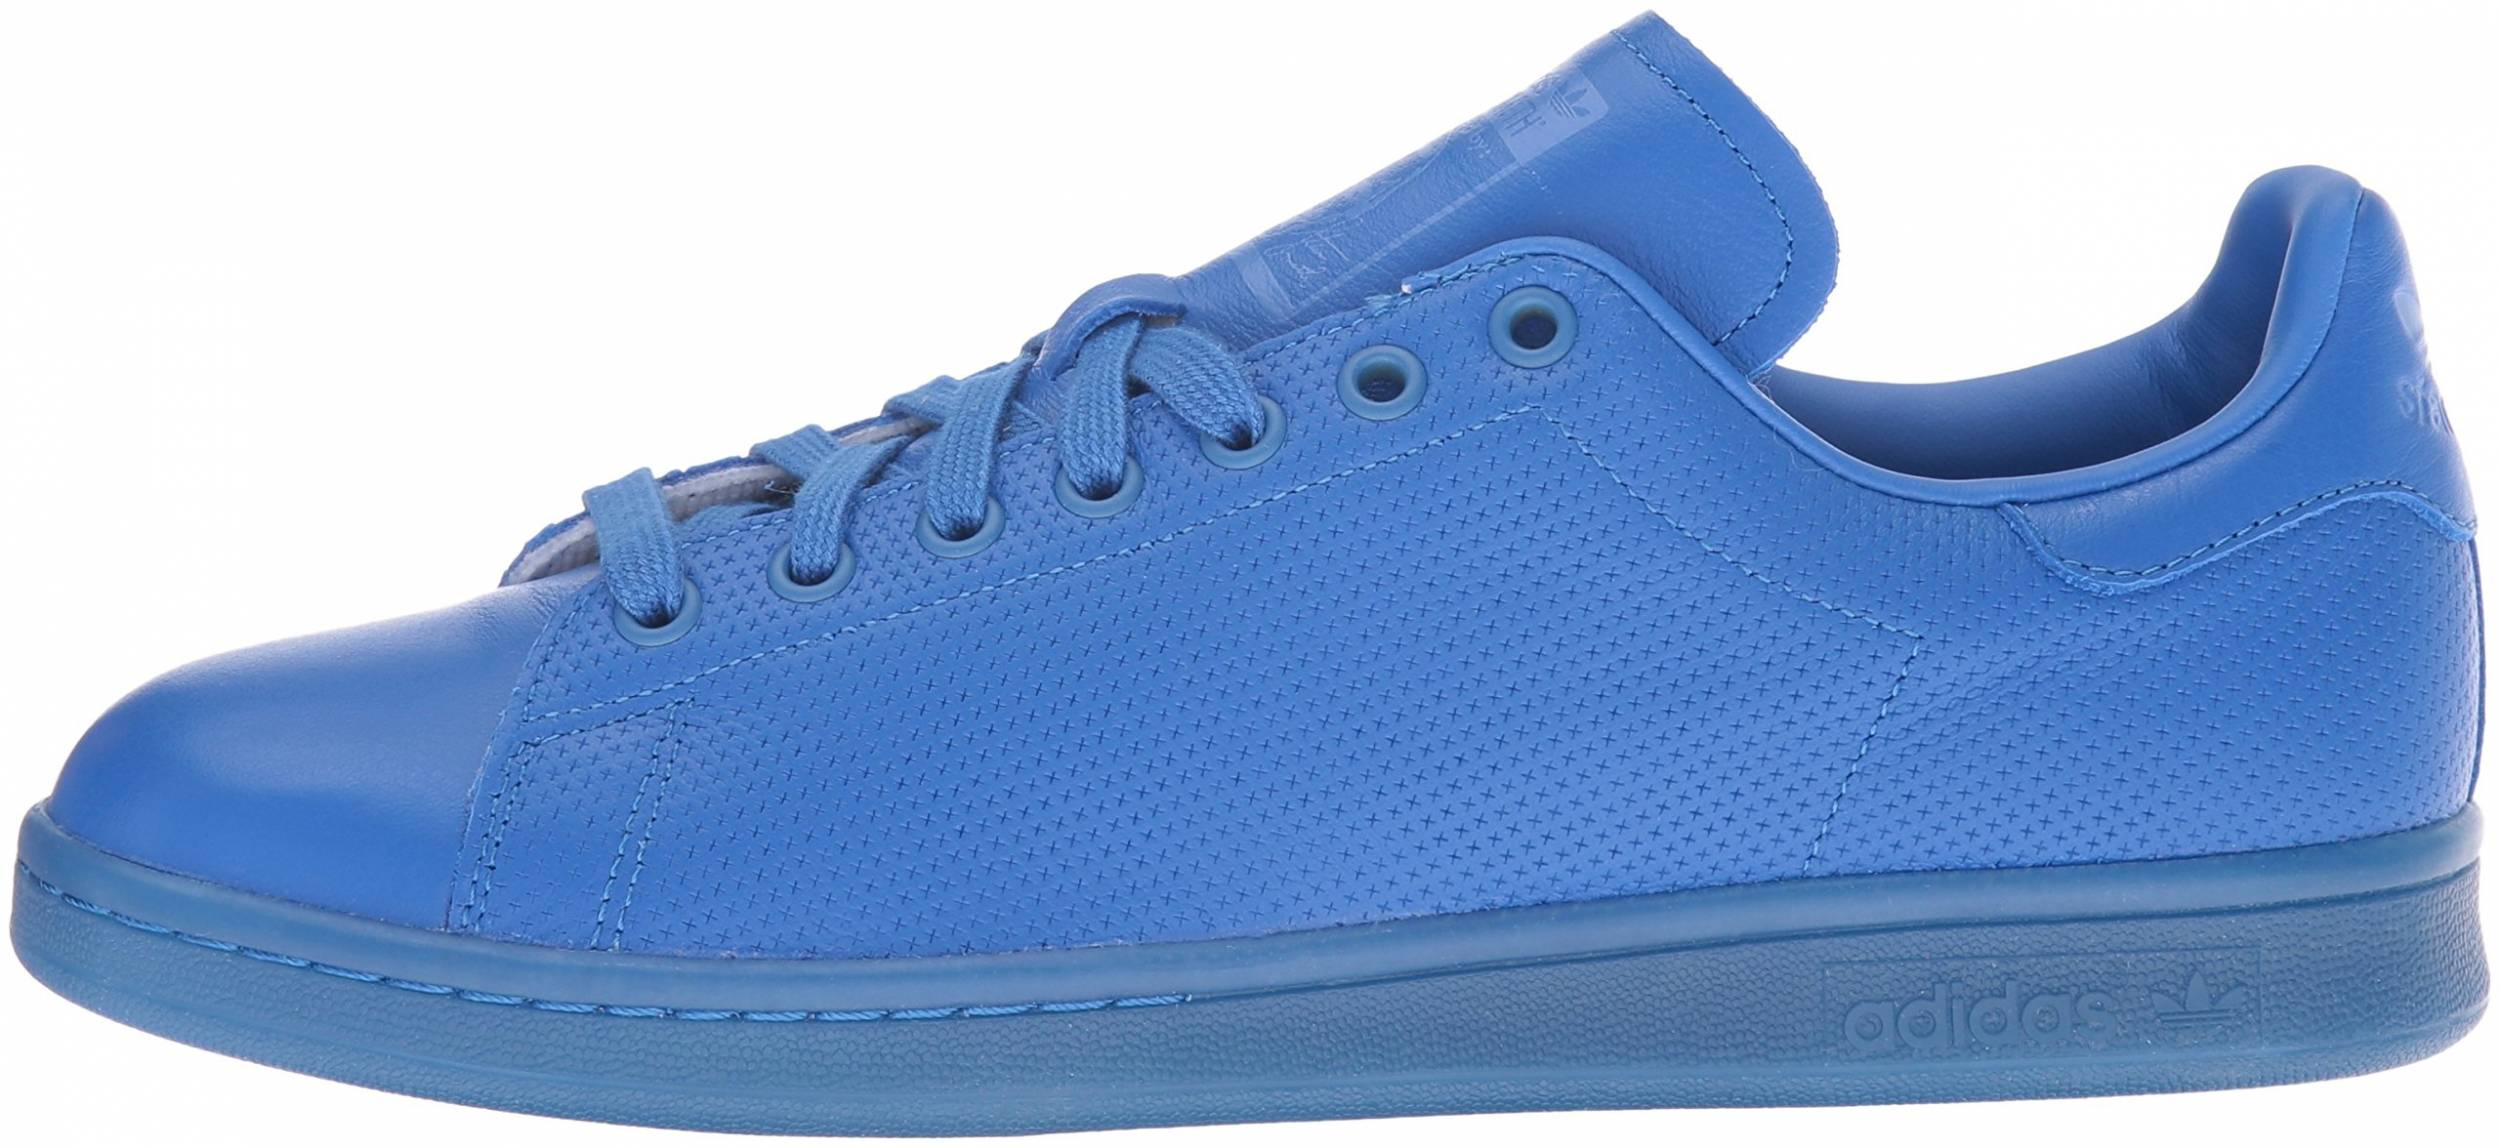 adidas stan smith low top